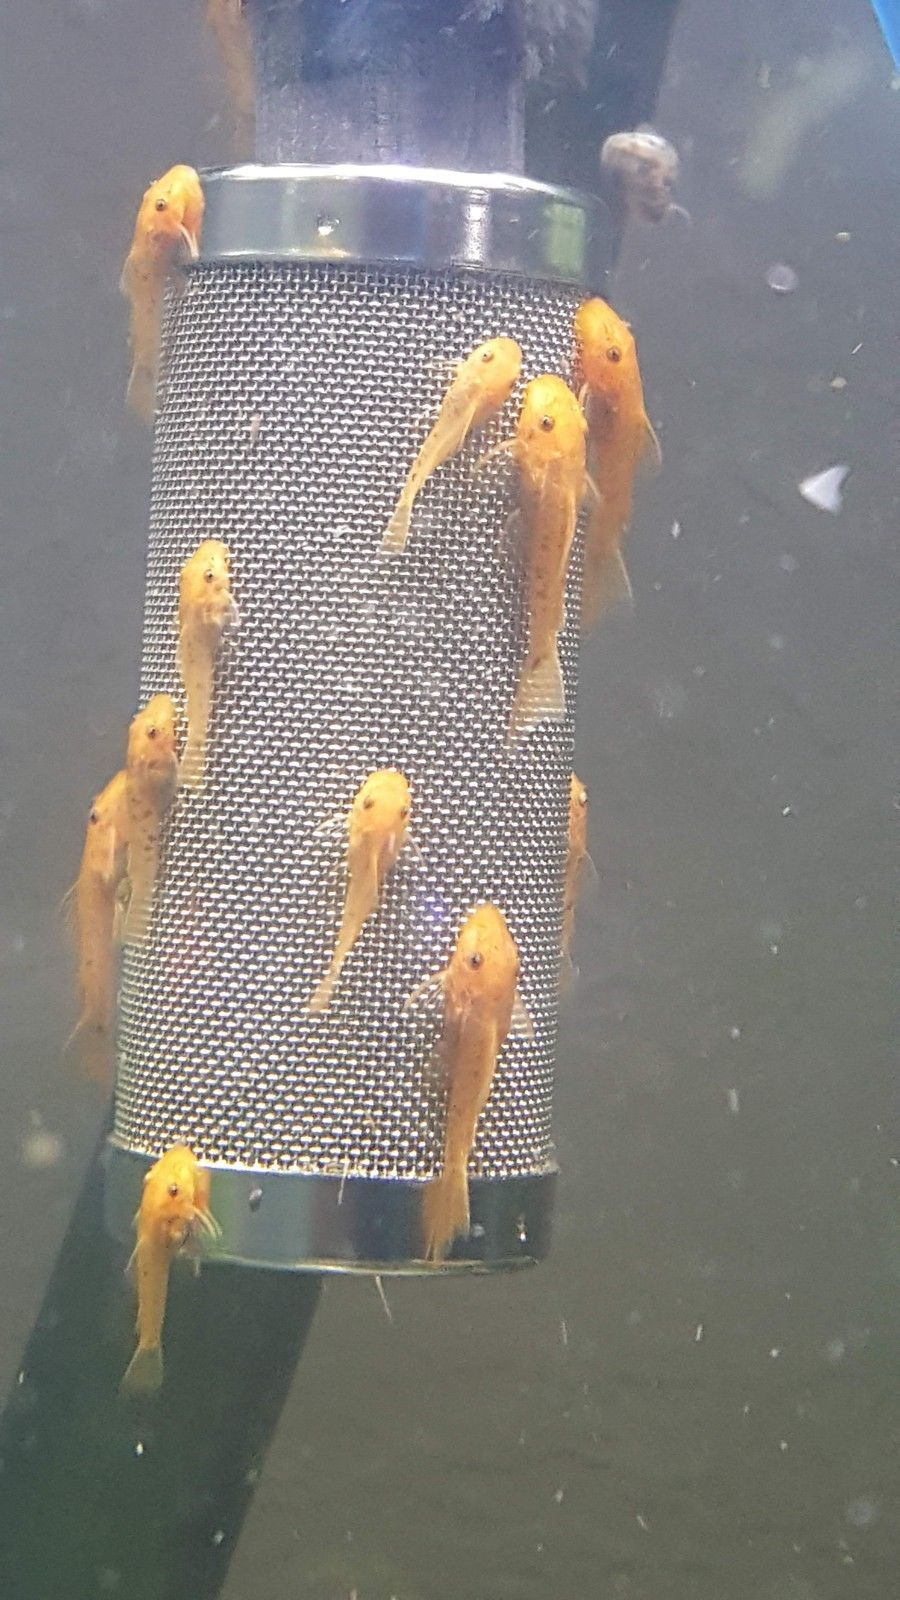 Marbled Super Red Bristlenose I M Selling 7 Juvenile Unsexed Marbled Super Red Bristlenose Plecos For Sale For 28 Th Plecostomus Pleco Fish Beautiful Fish